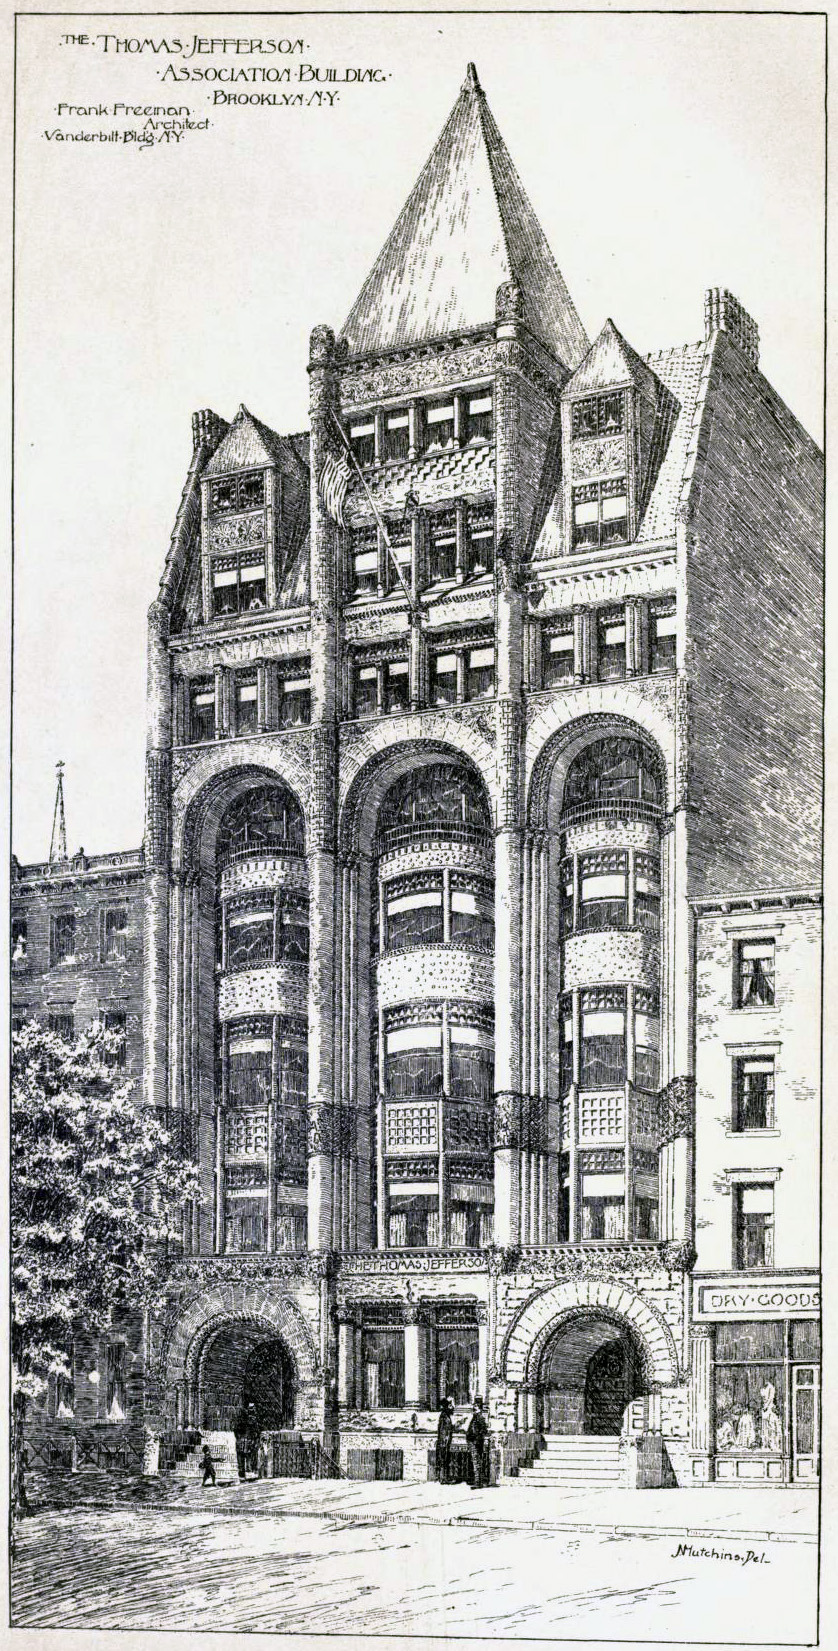 The Thomas Jefferson Association Building, Brooklyn